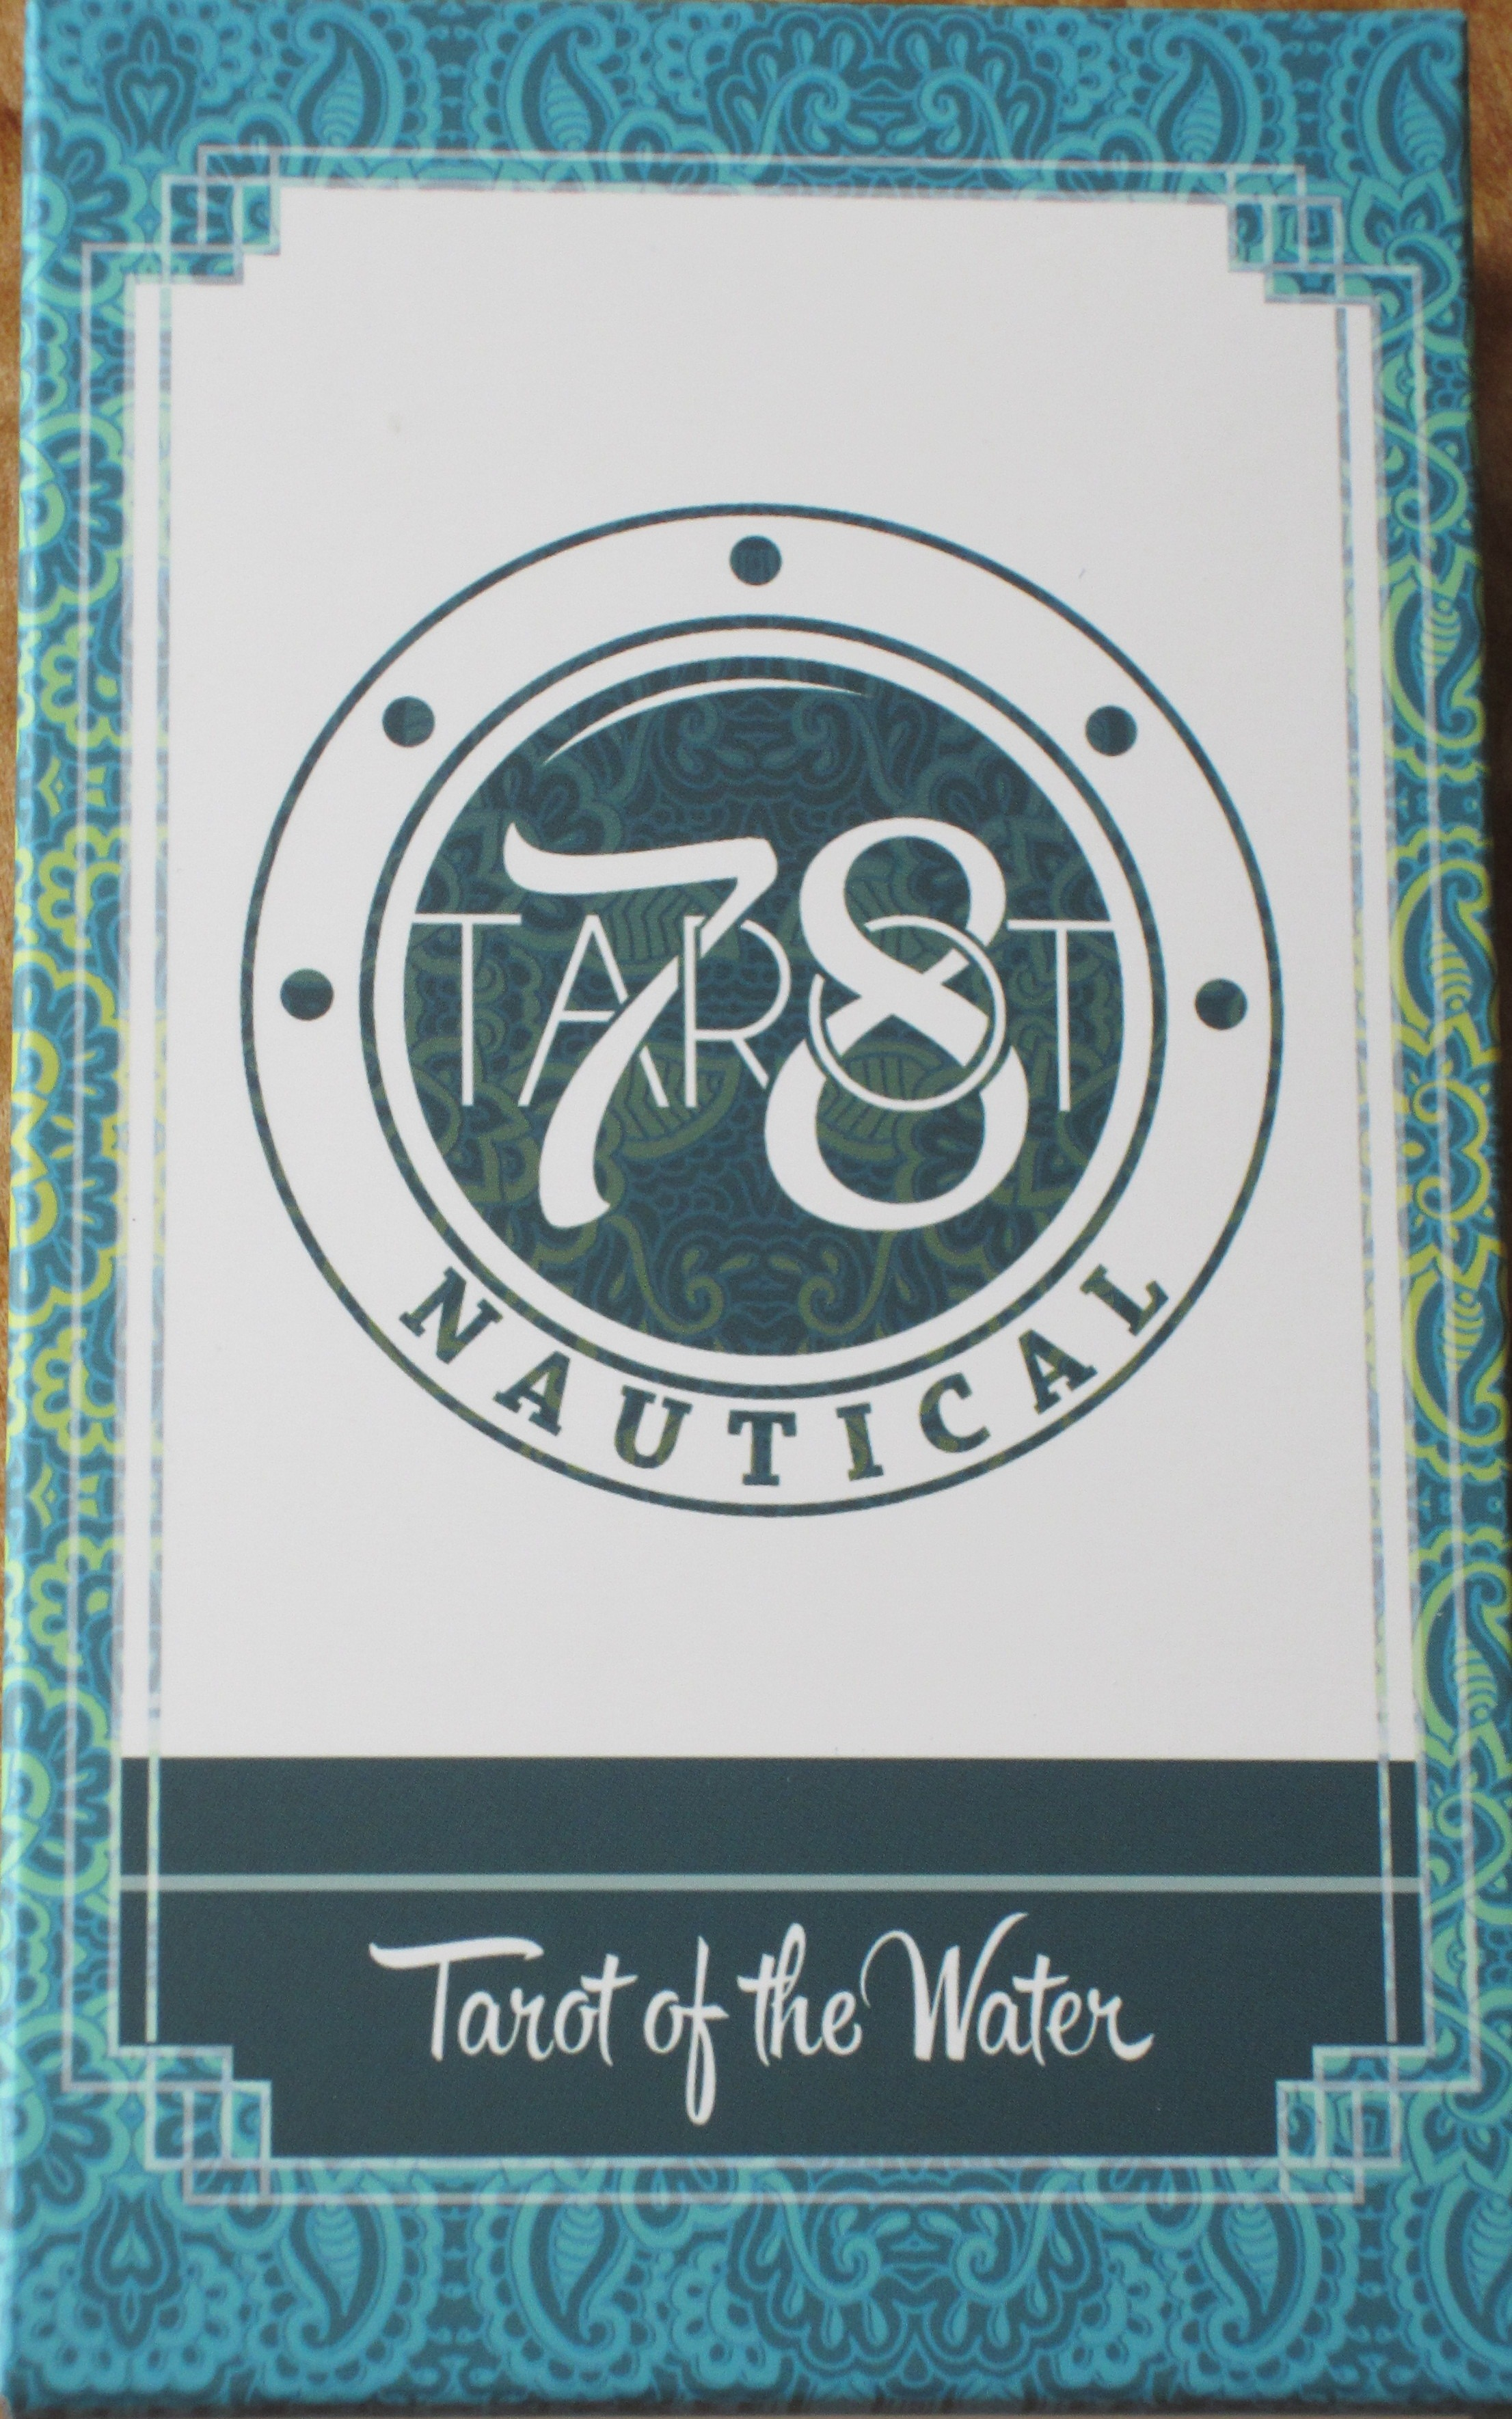 78 Tarot Nautical